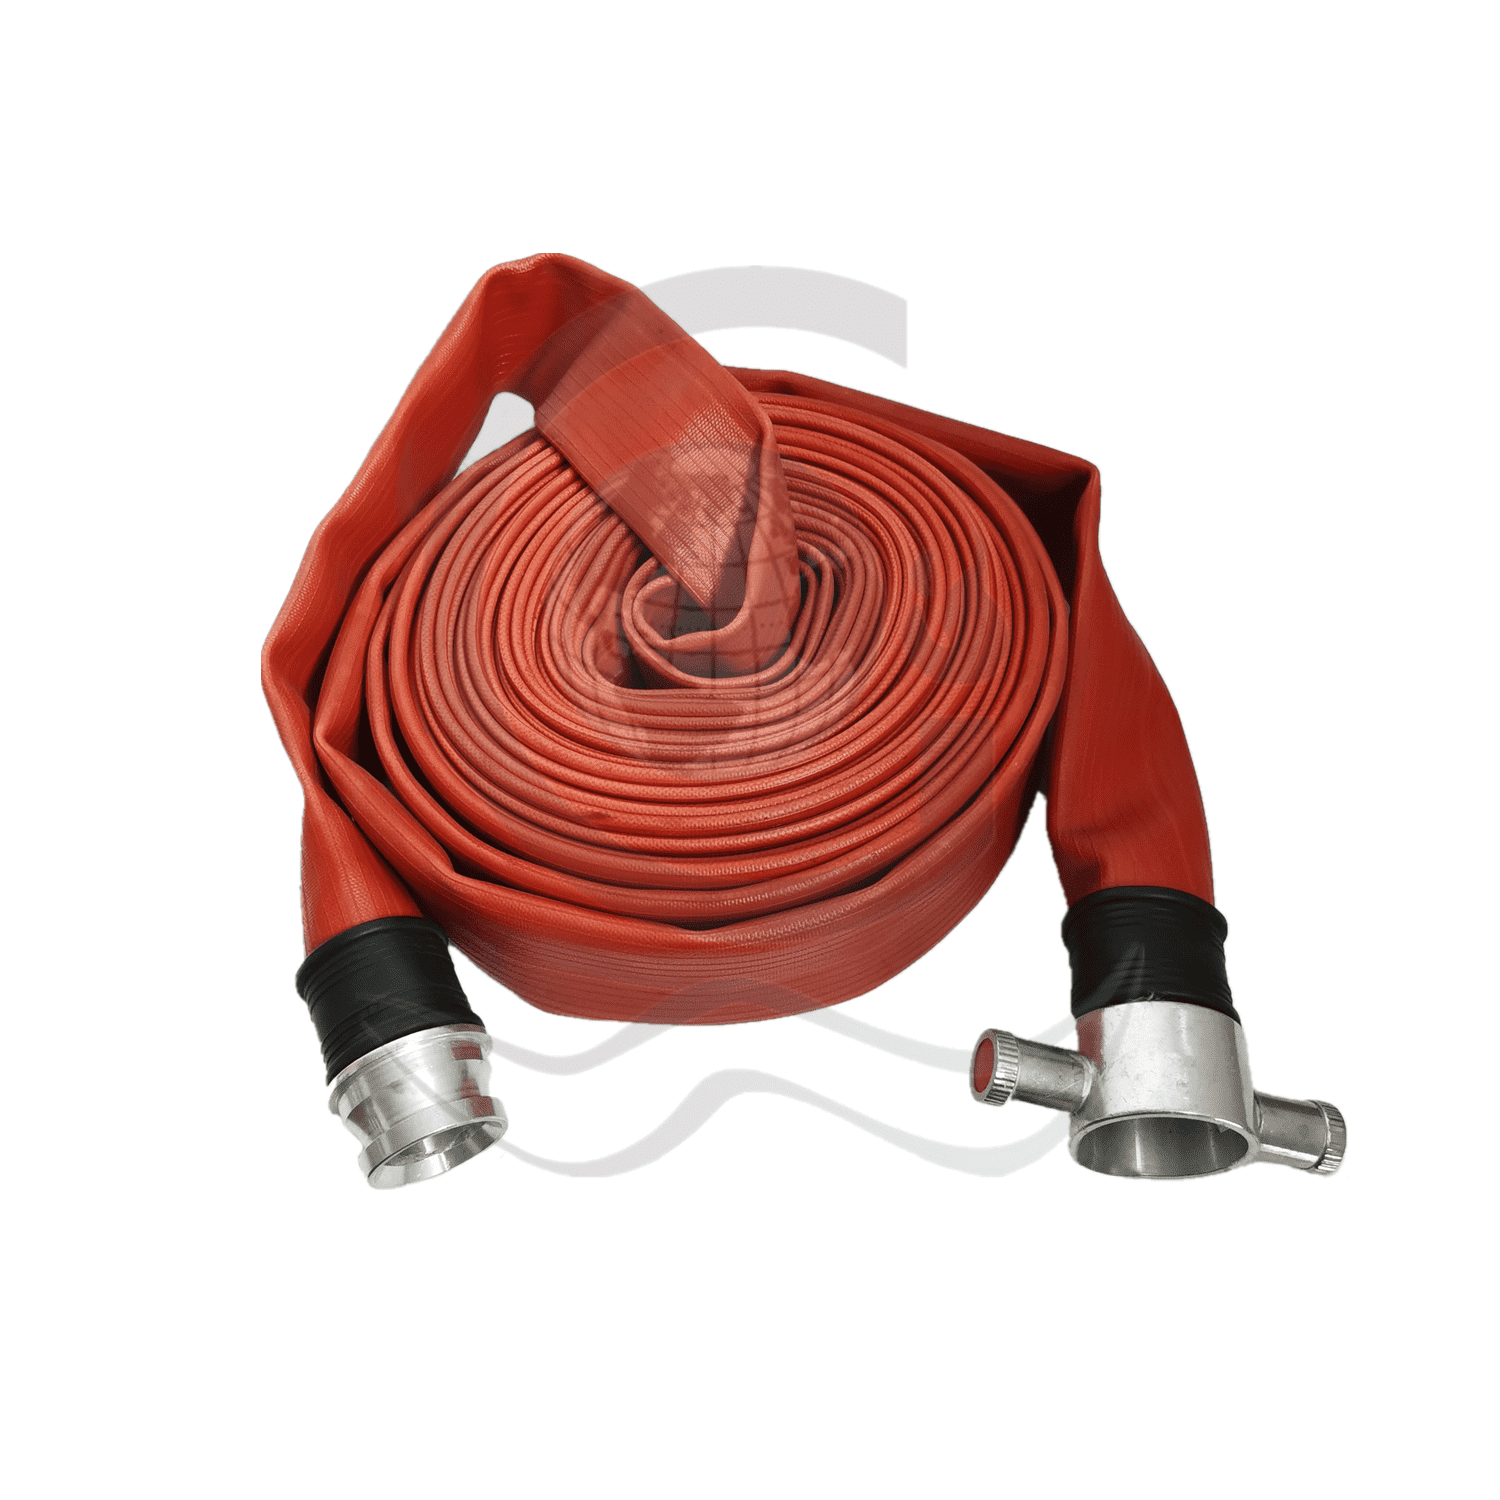 duraline fire hose Featured Image